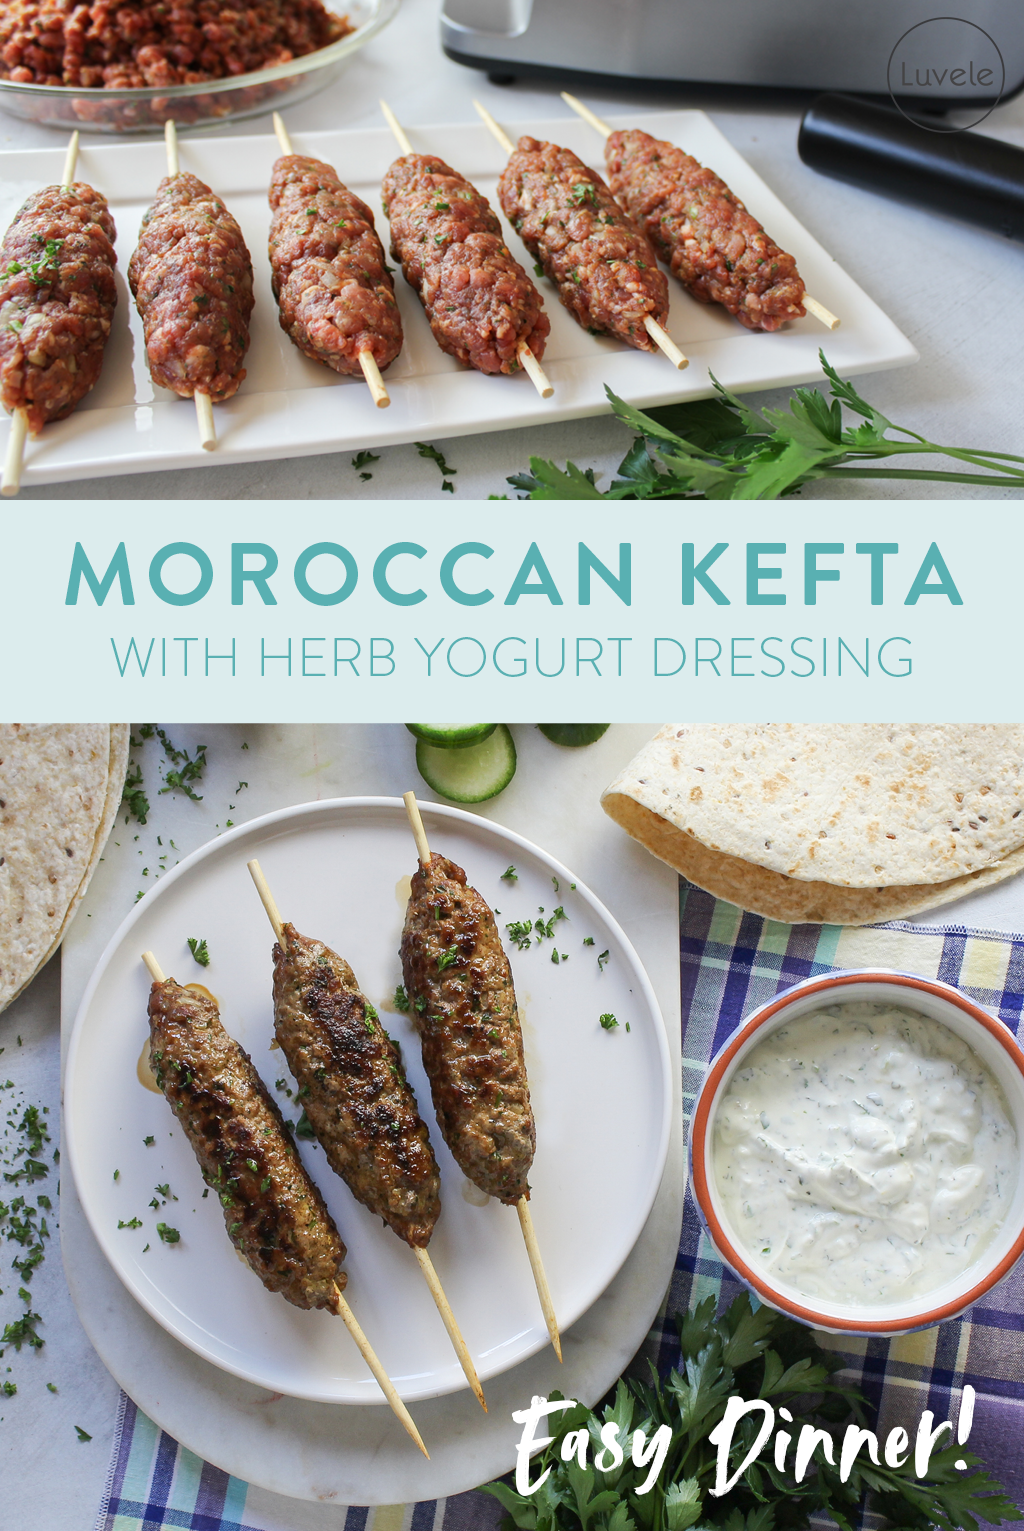 Moroccan ground beef Kefta Kofta with herb yogurt